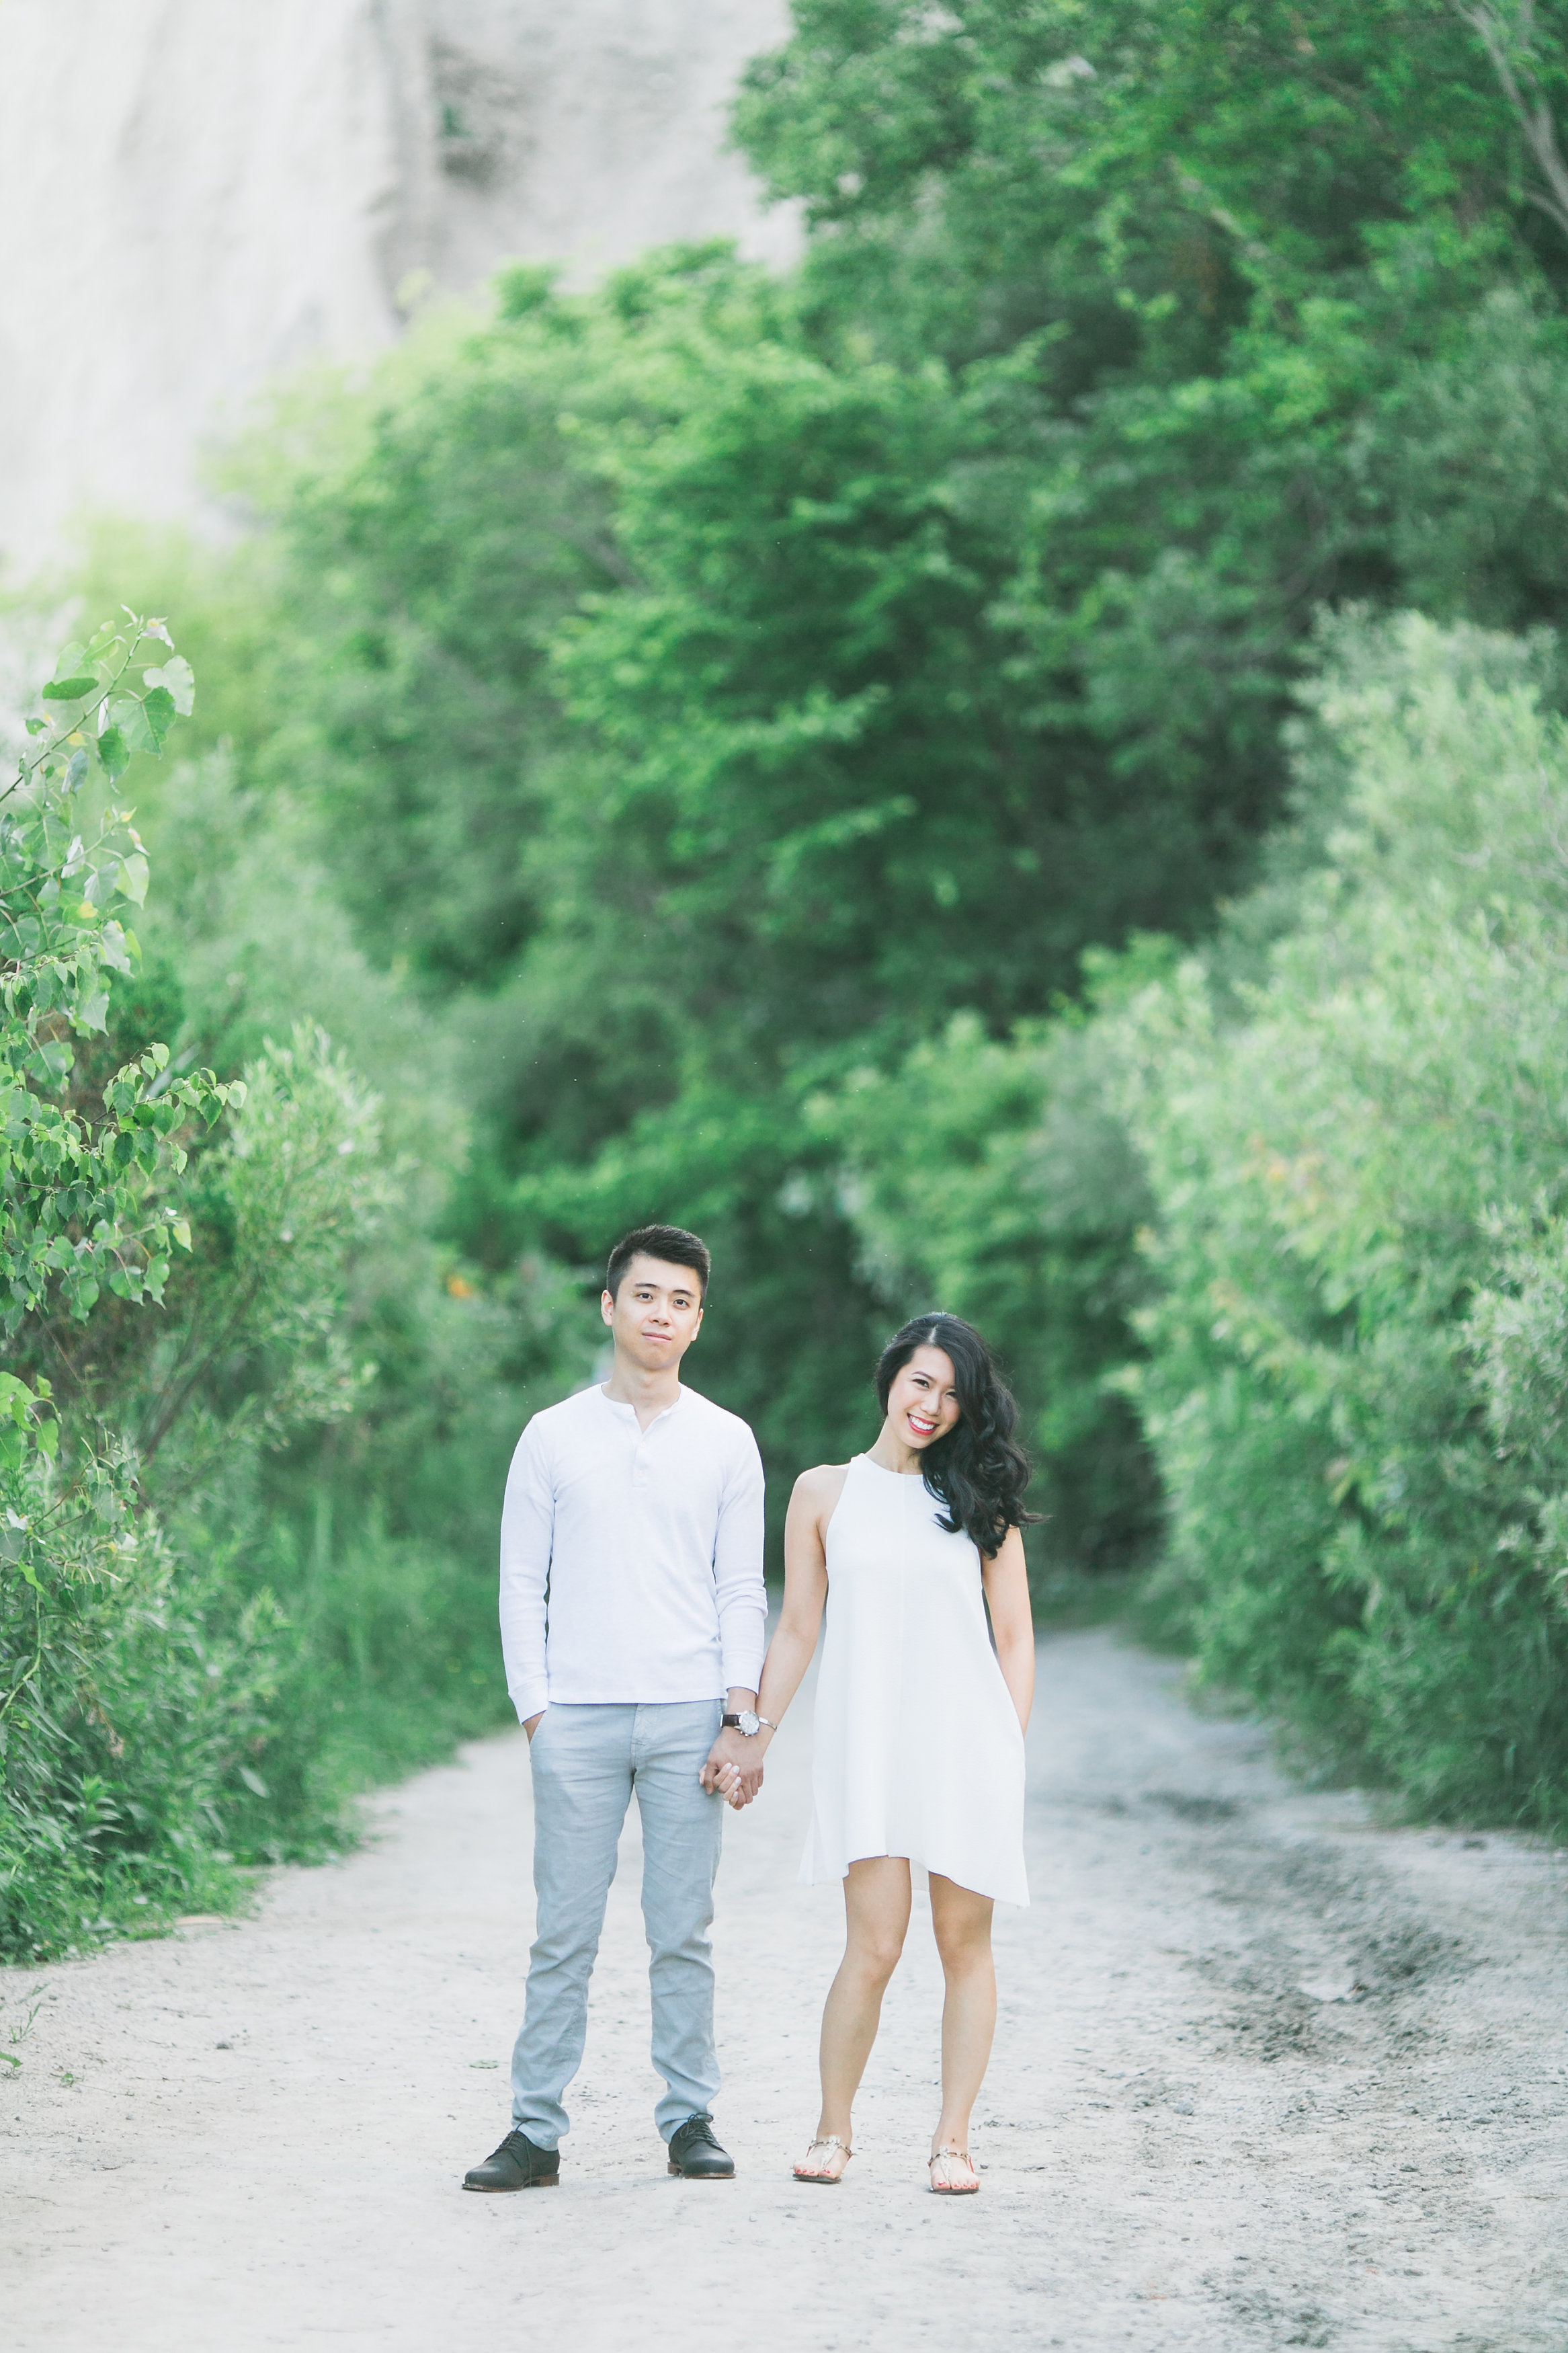 Phoebe Lo Events Toronto Wedding - Scarbourough Bluffs Bohemian Beach Engagement 009.jpg